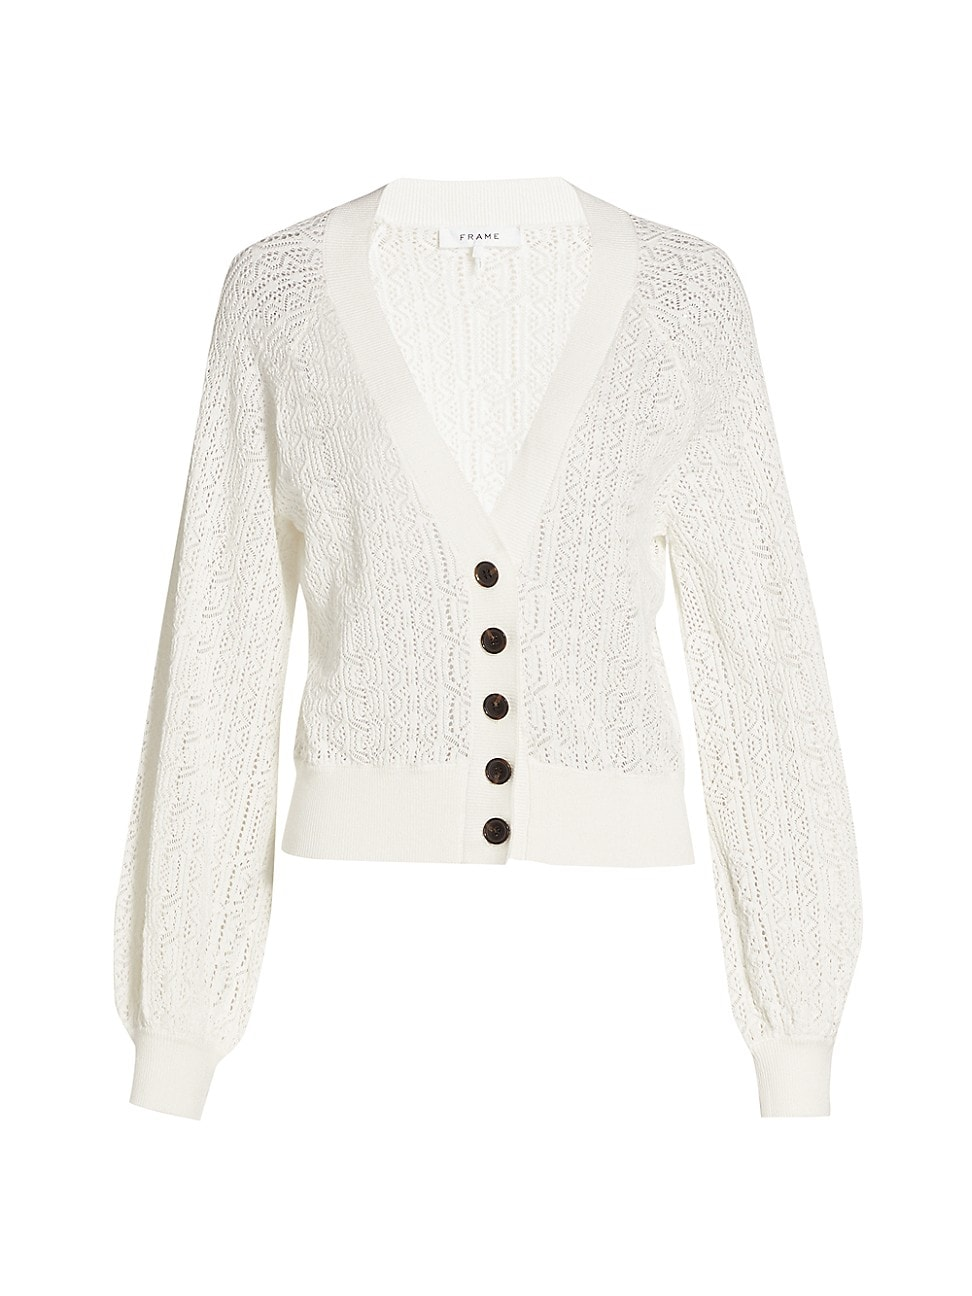 Frame WOMEN'S CHAIN LACE CARDIGAN